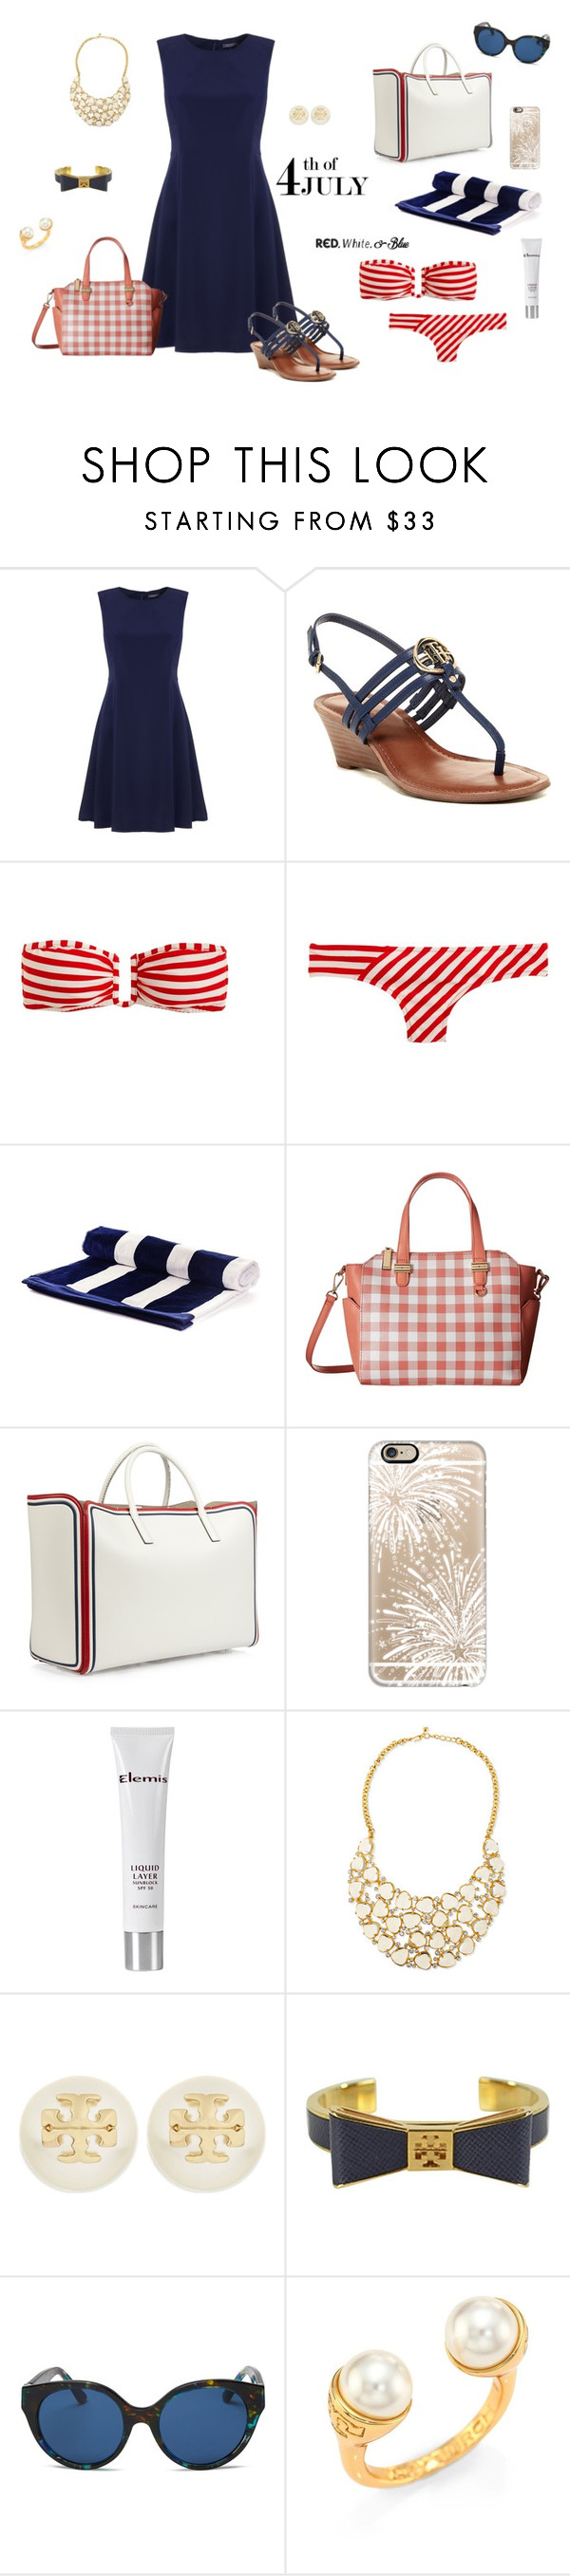 """""""Happy 4th of July!"""" by picassogirl ❤ liked on Polyvore featuring Tommy Hilfiger, J.Crew, Anya Hindmarch, Casetify, Elemis, Kenneth Jay Lane and Tory Burch"""